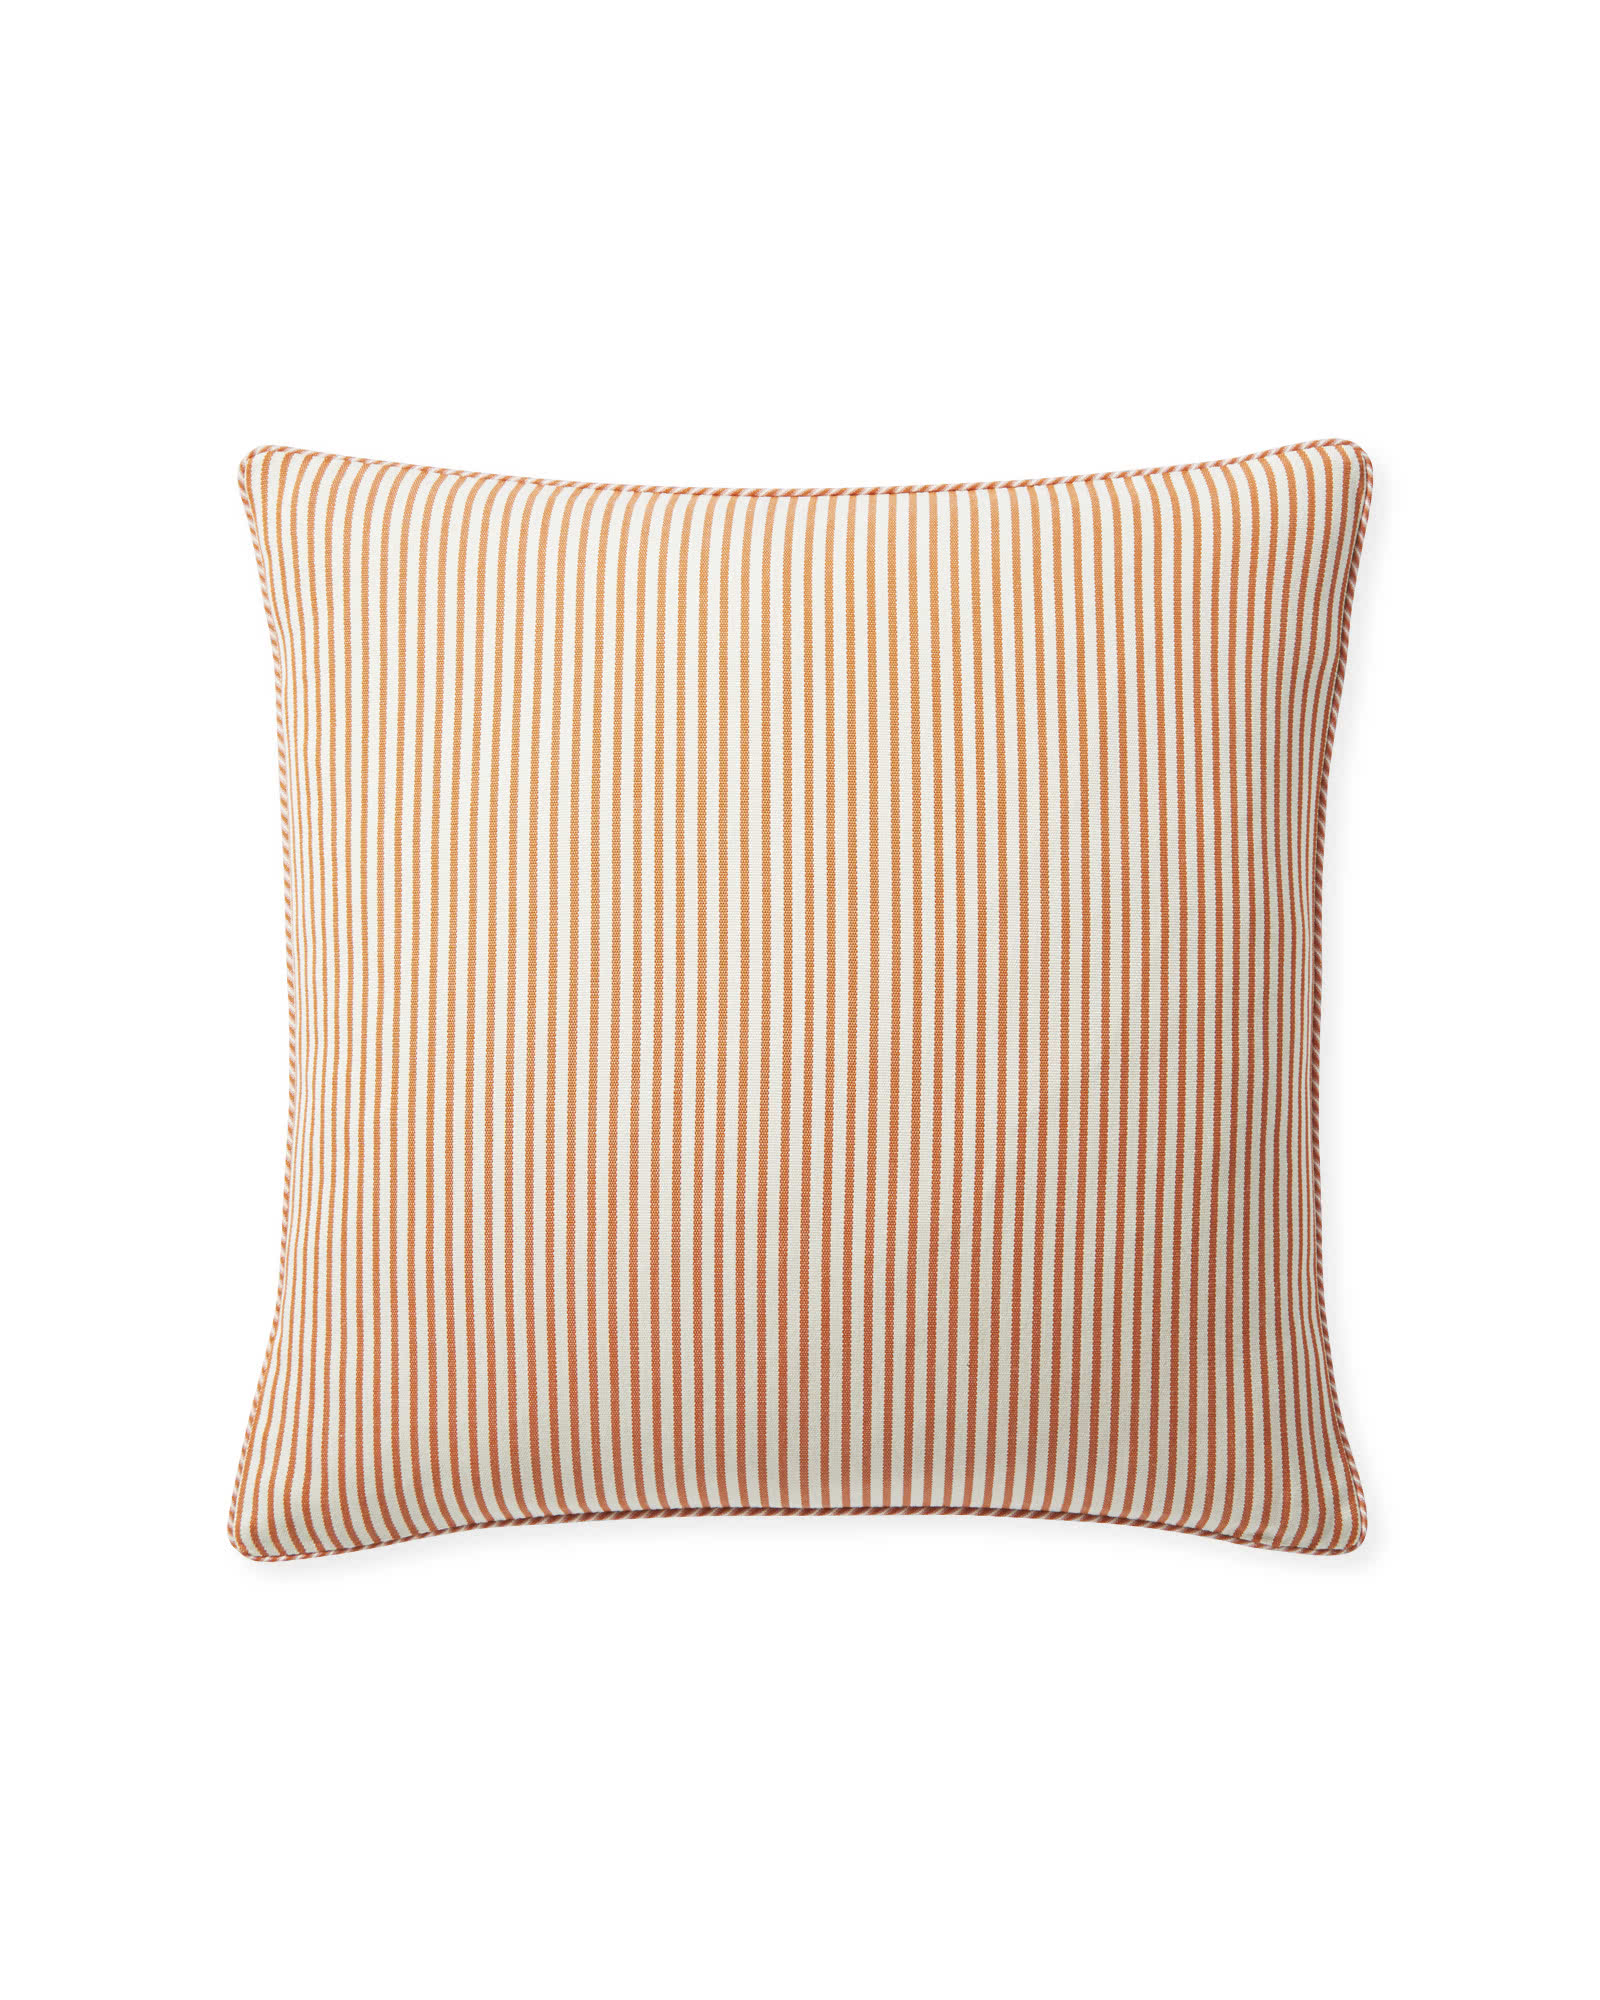 Perennials® Pinstripe Outdoor Pillow Cover